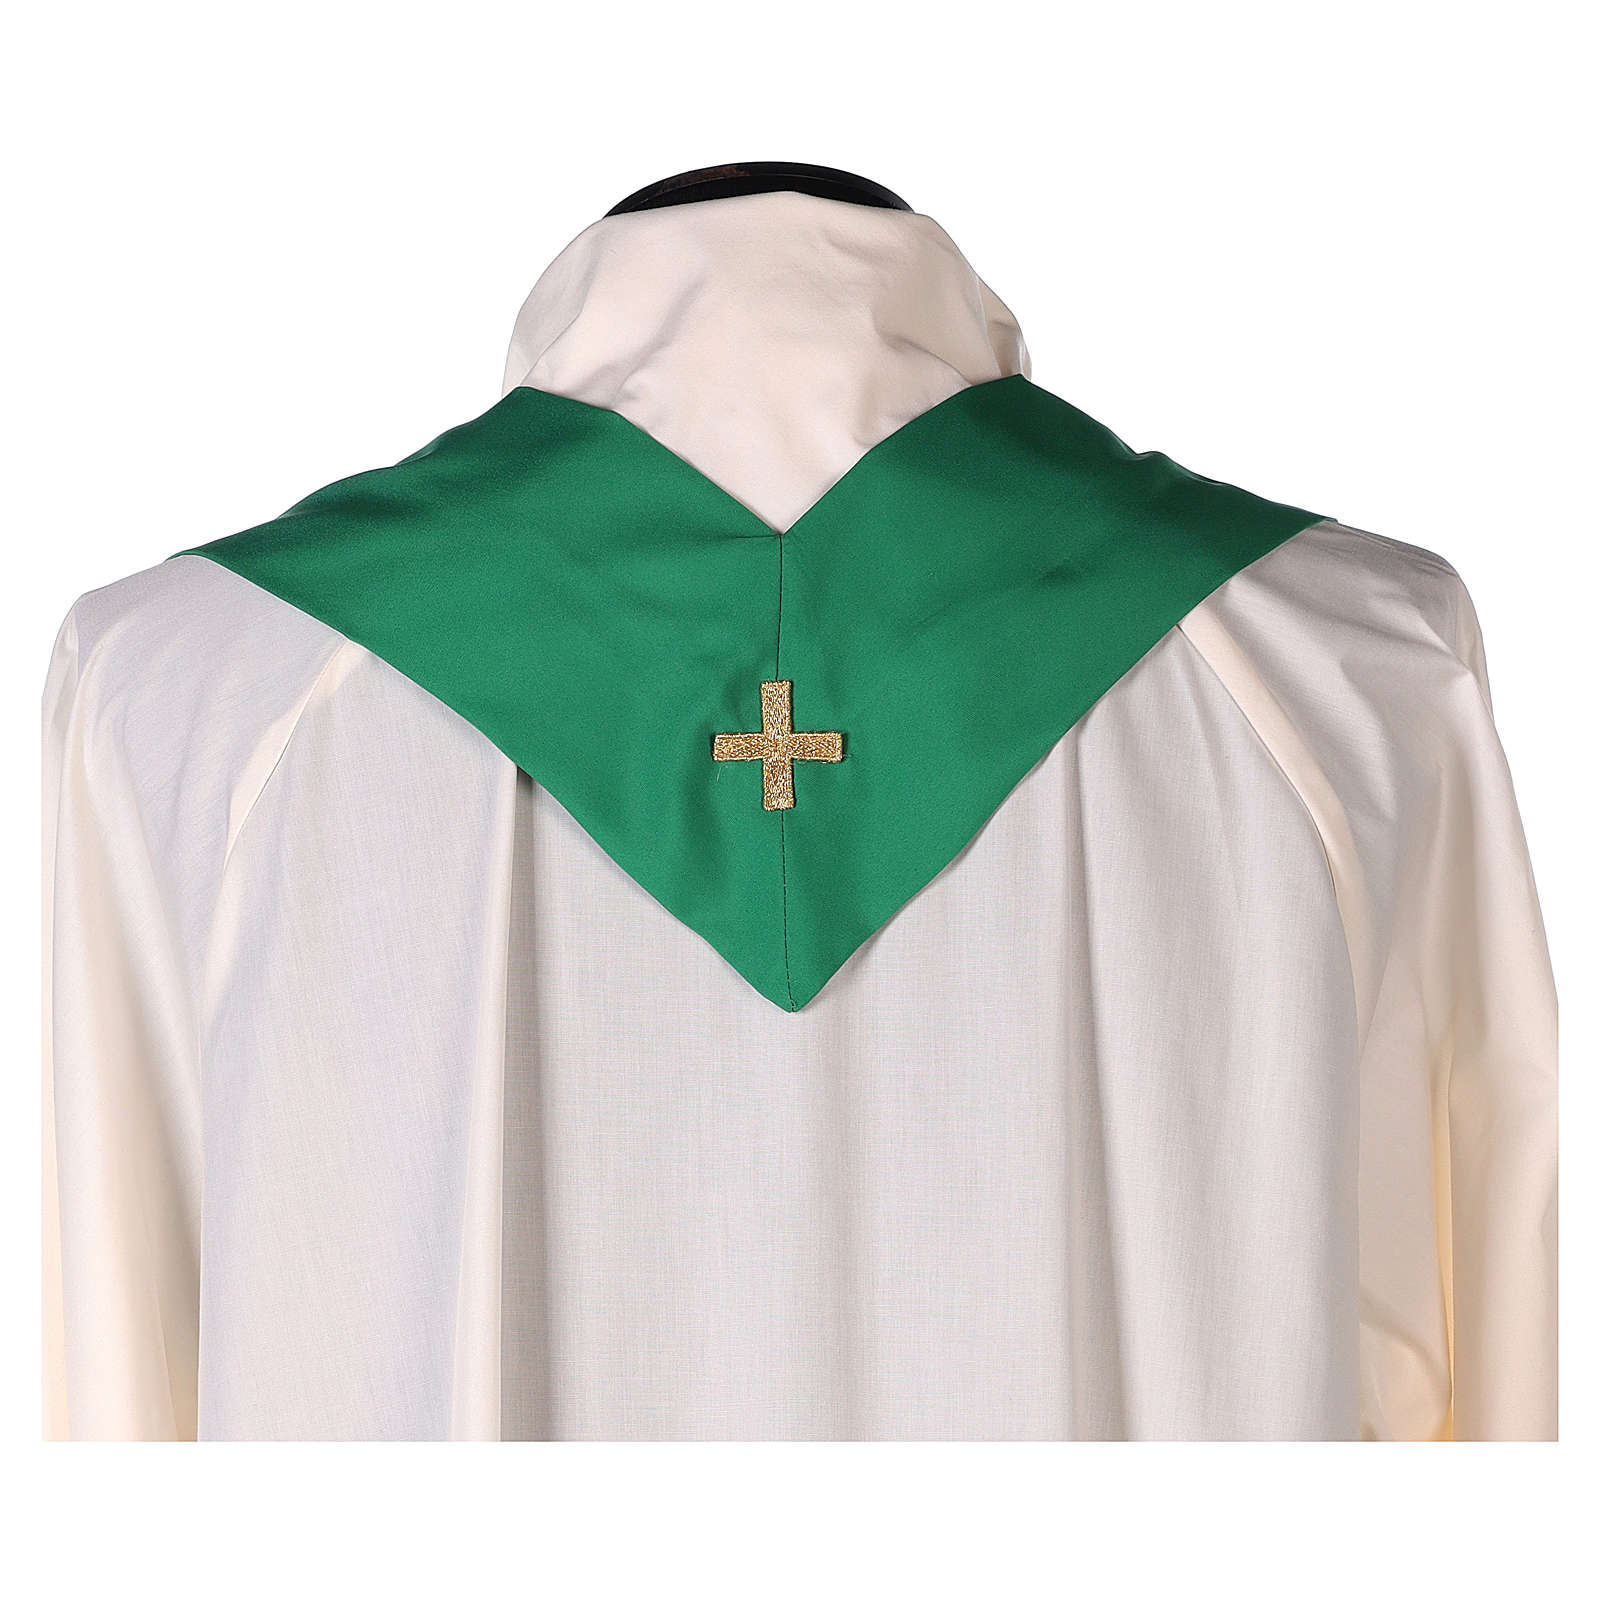 Chasuble 100% polyester 4 couleurs IHS croix rayons 4